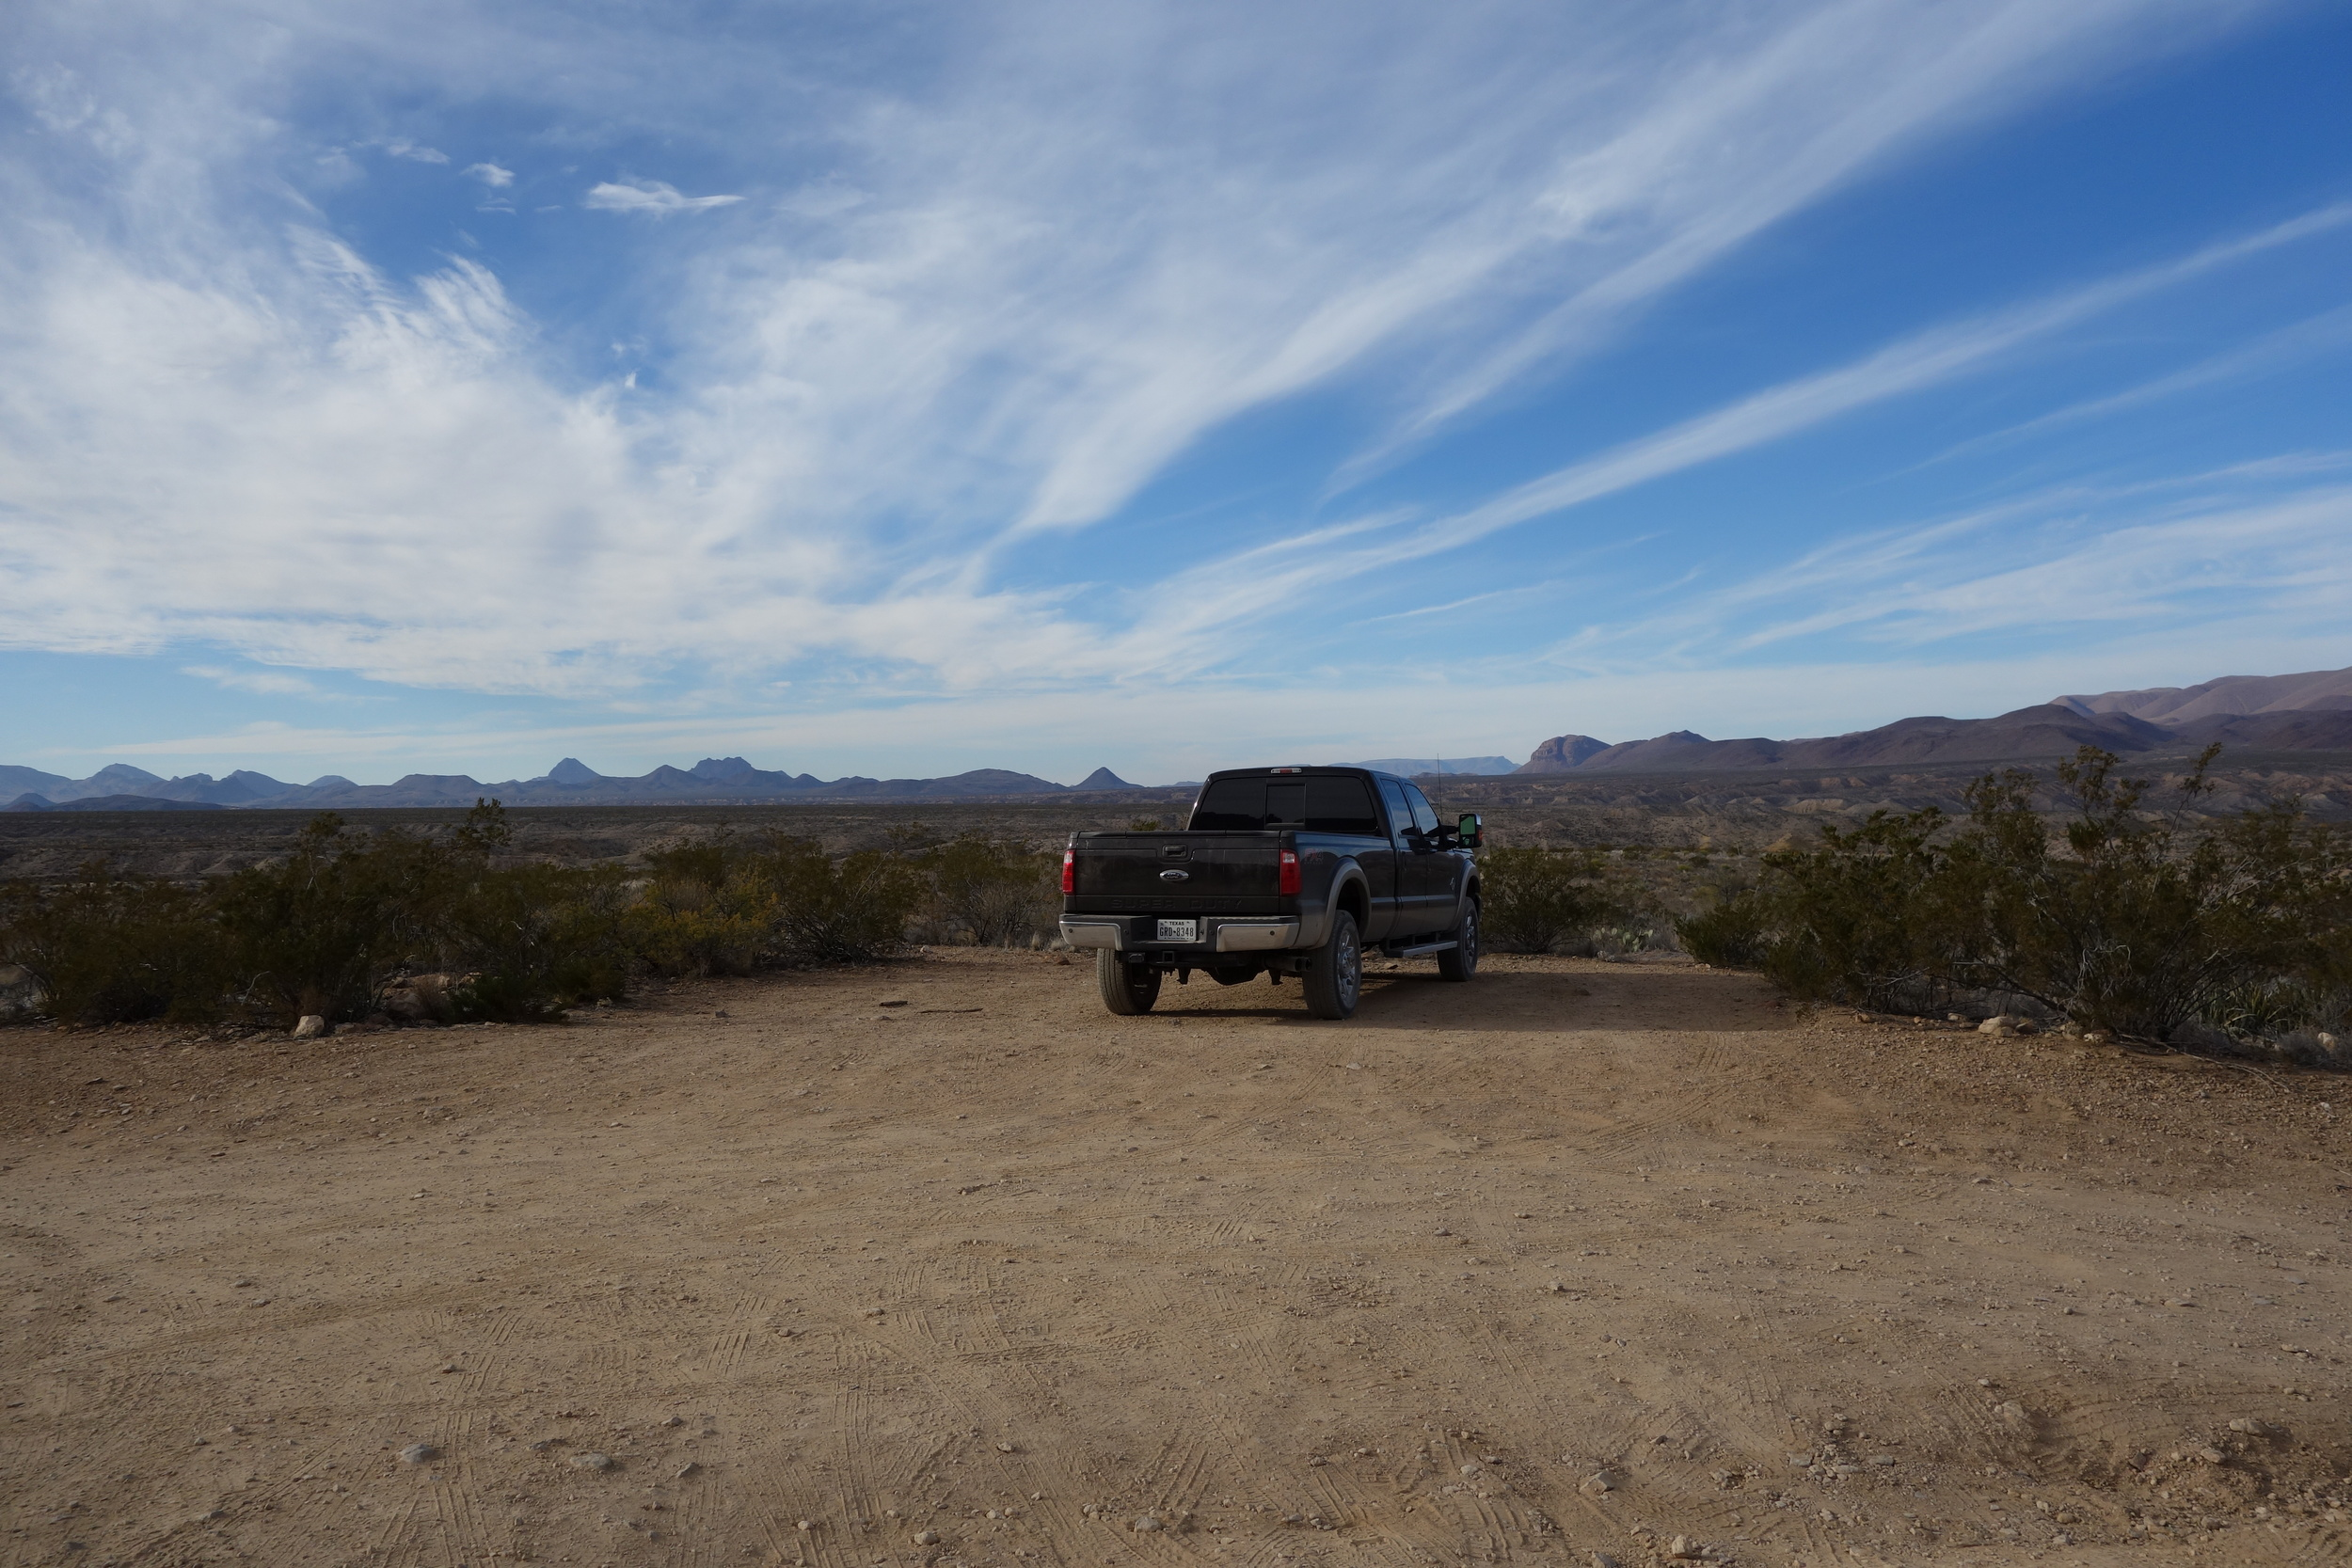 you know it. big bend is as cool as it gets.